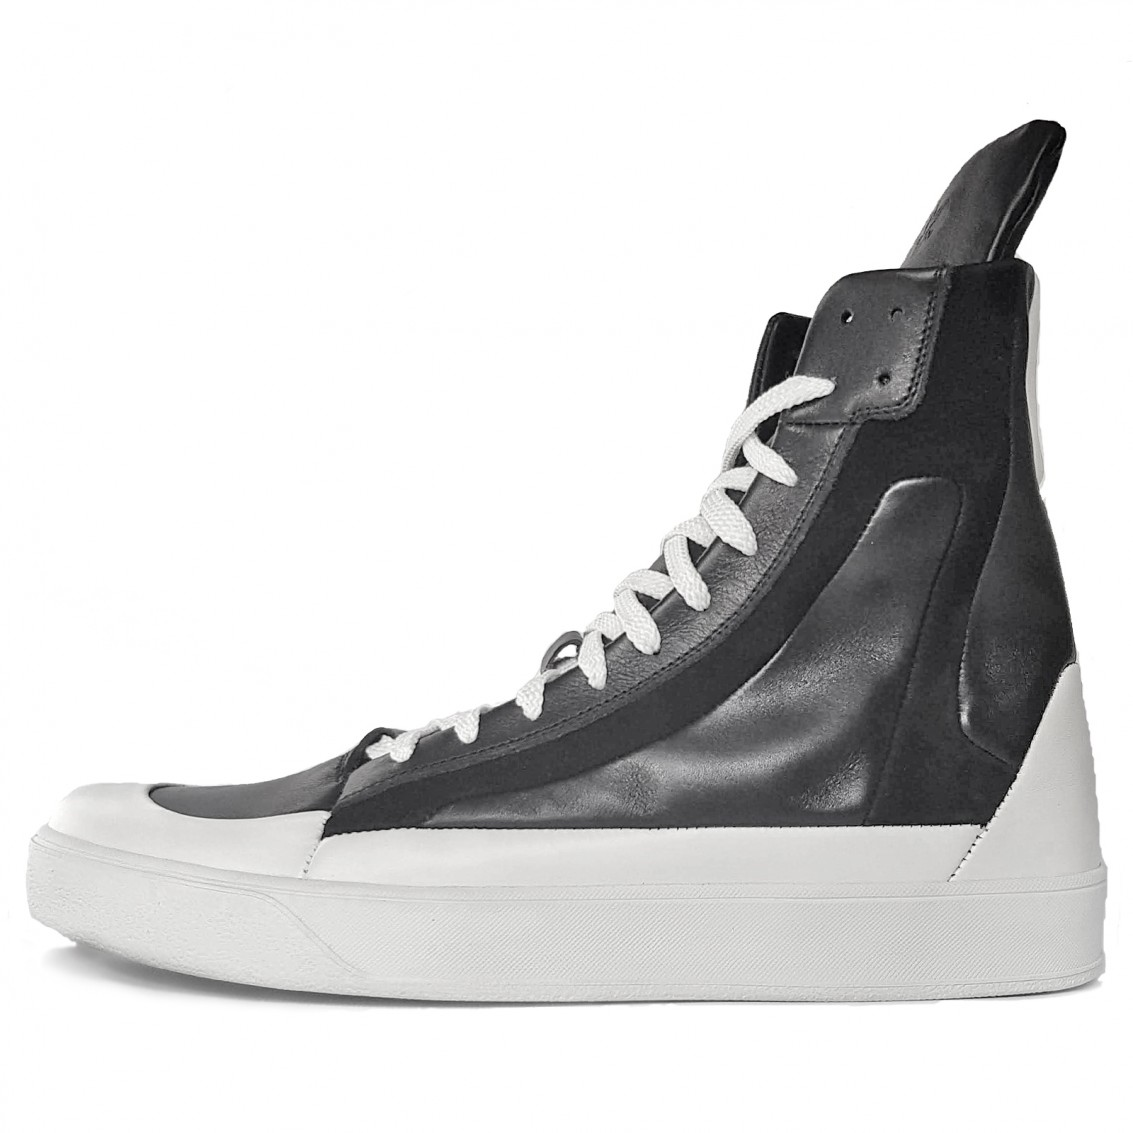 Men's high-top lace-up sneakers